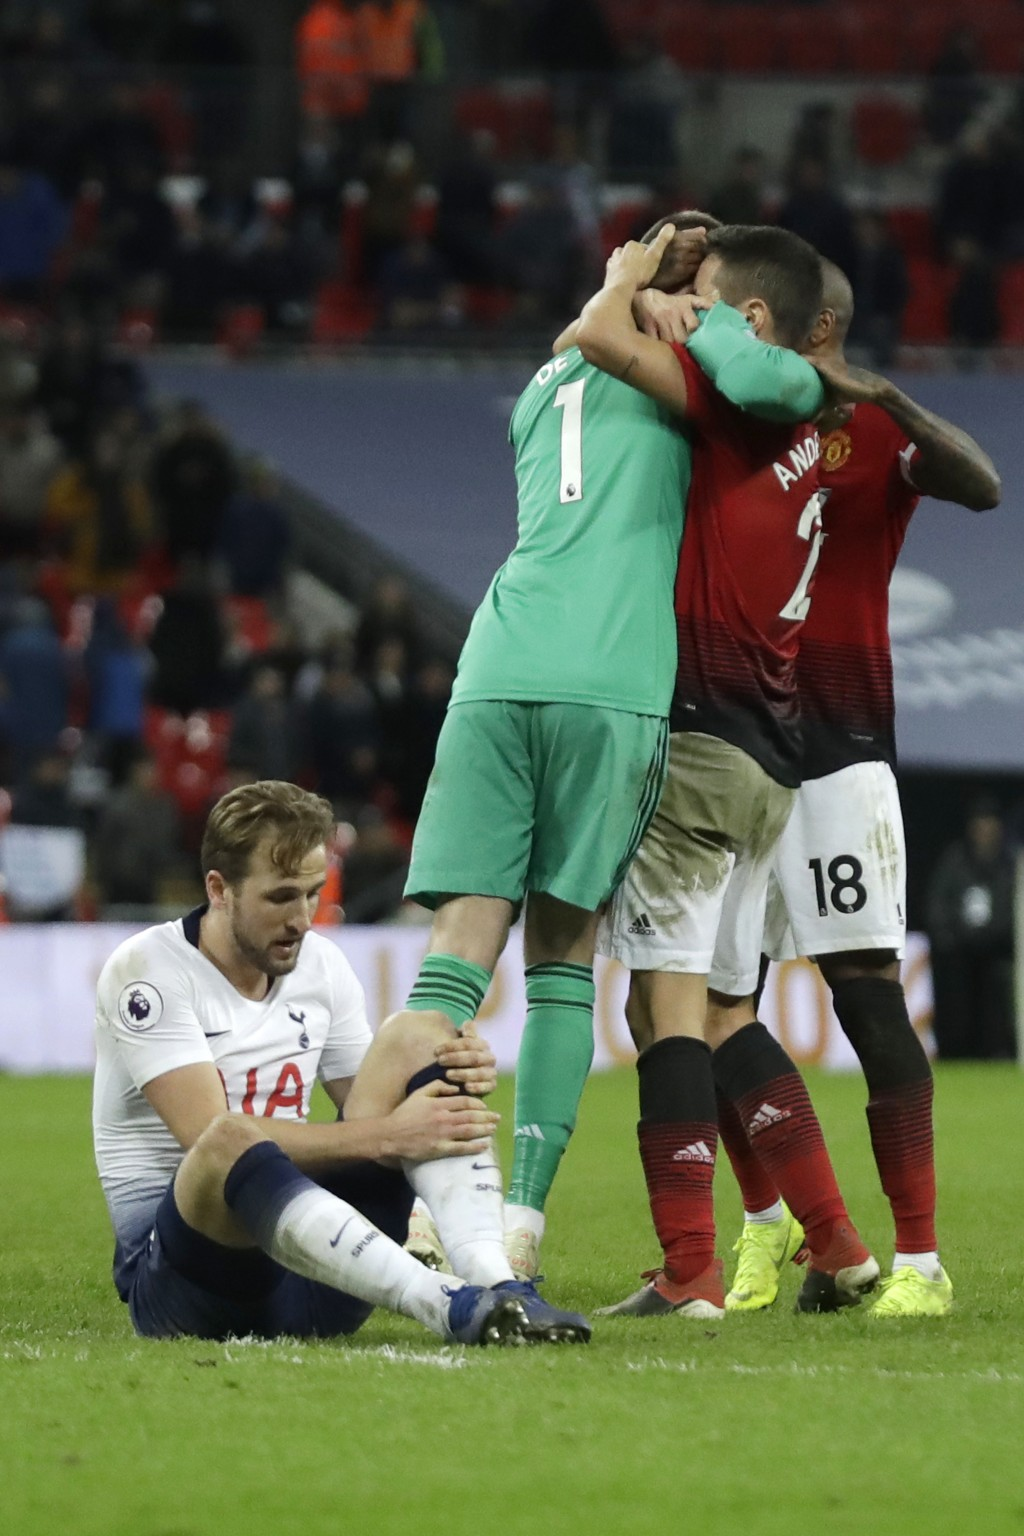 Tottenham's Harry Kane sits on the pitch with an injury as Manchester United players hugs teammate and goalkeeper David de Gea, left in green, after t